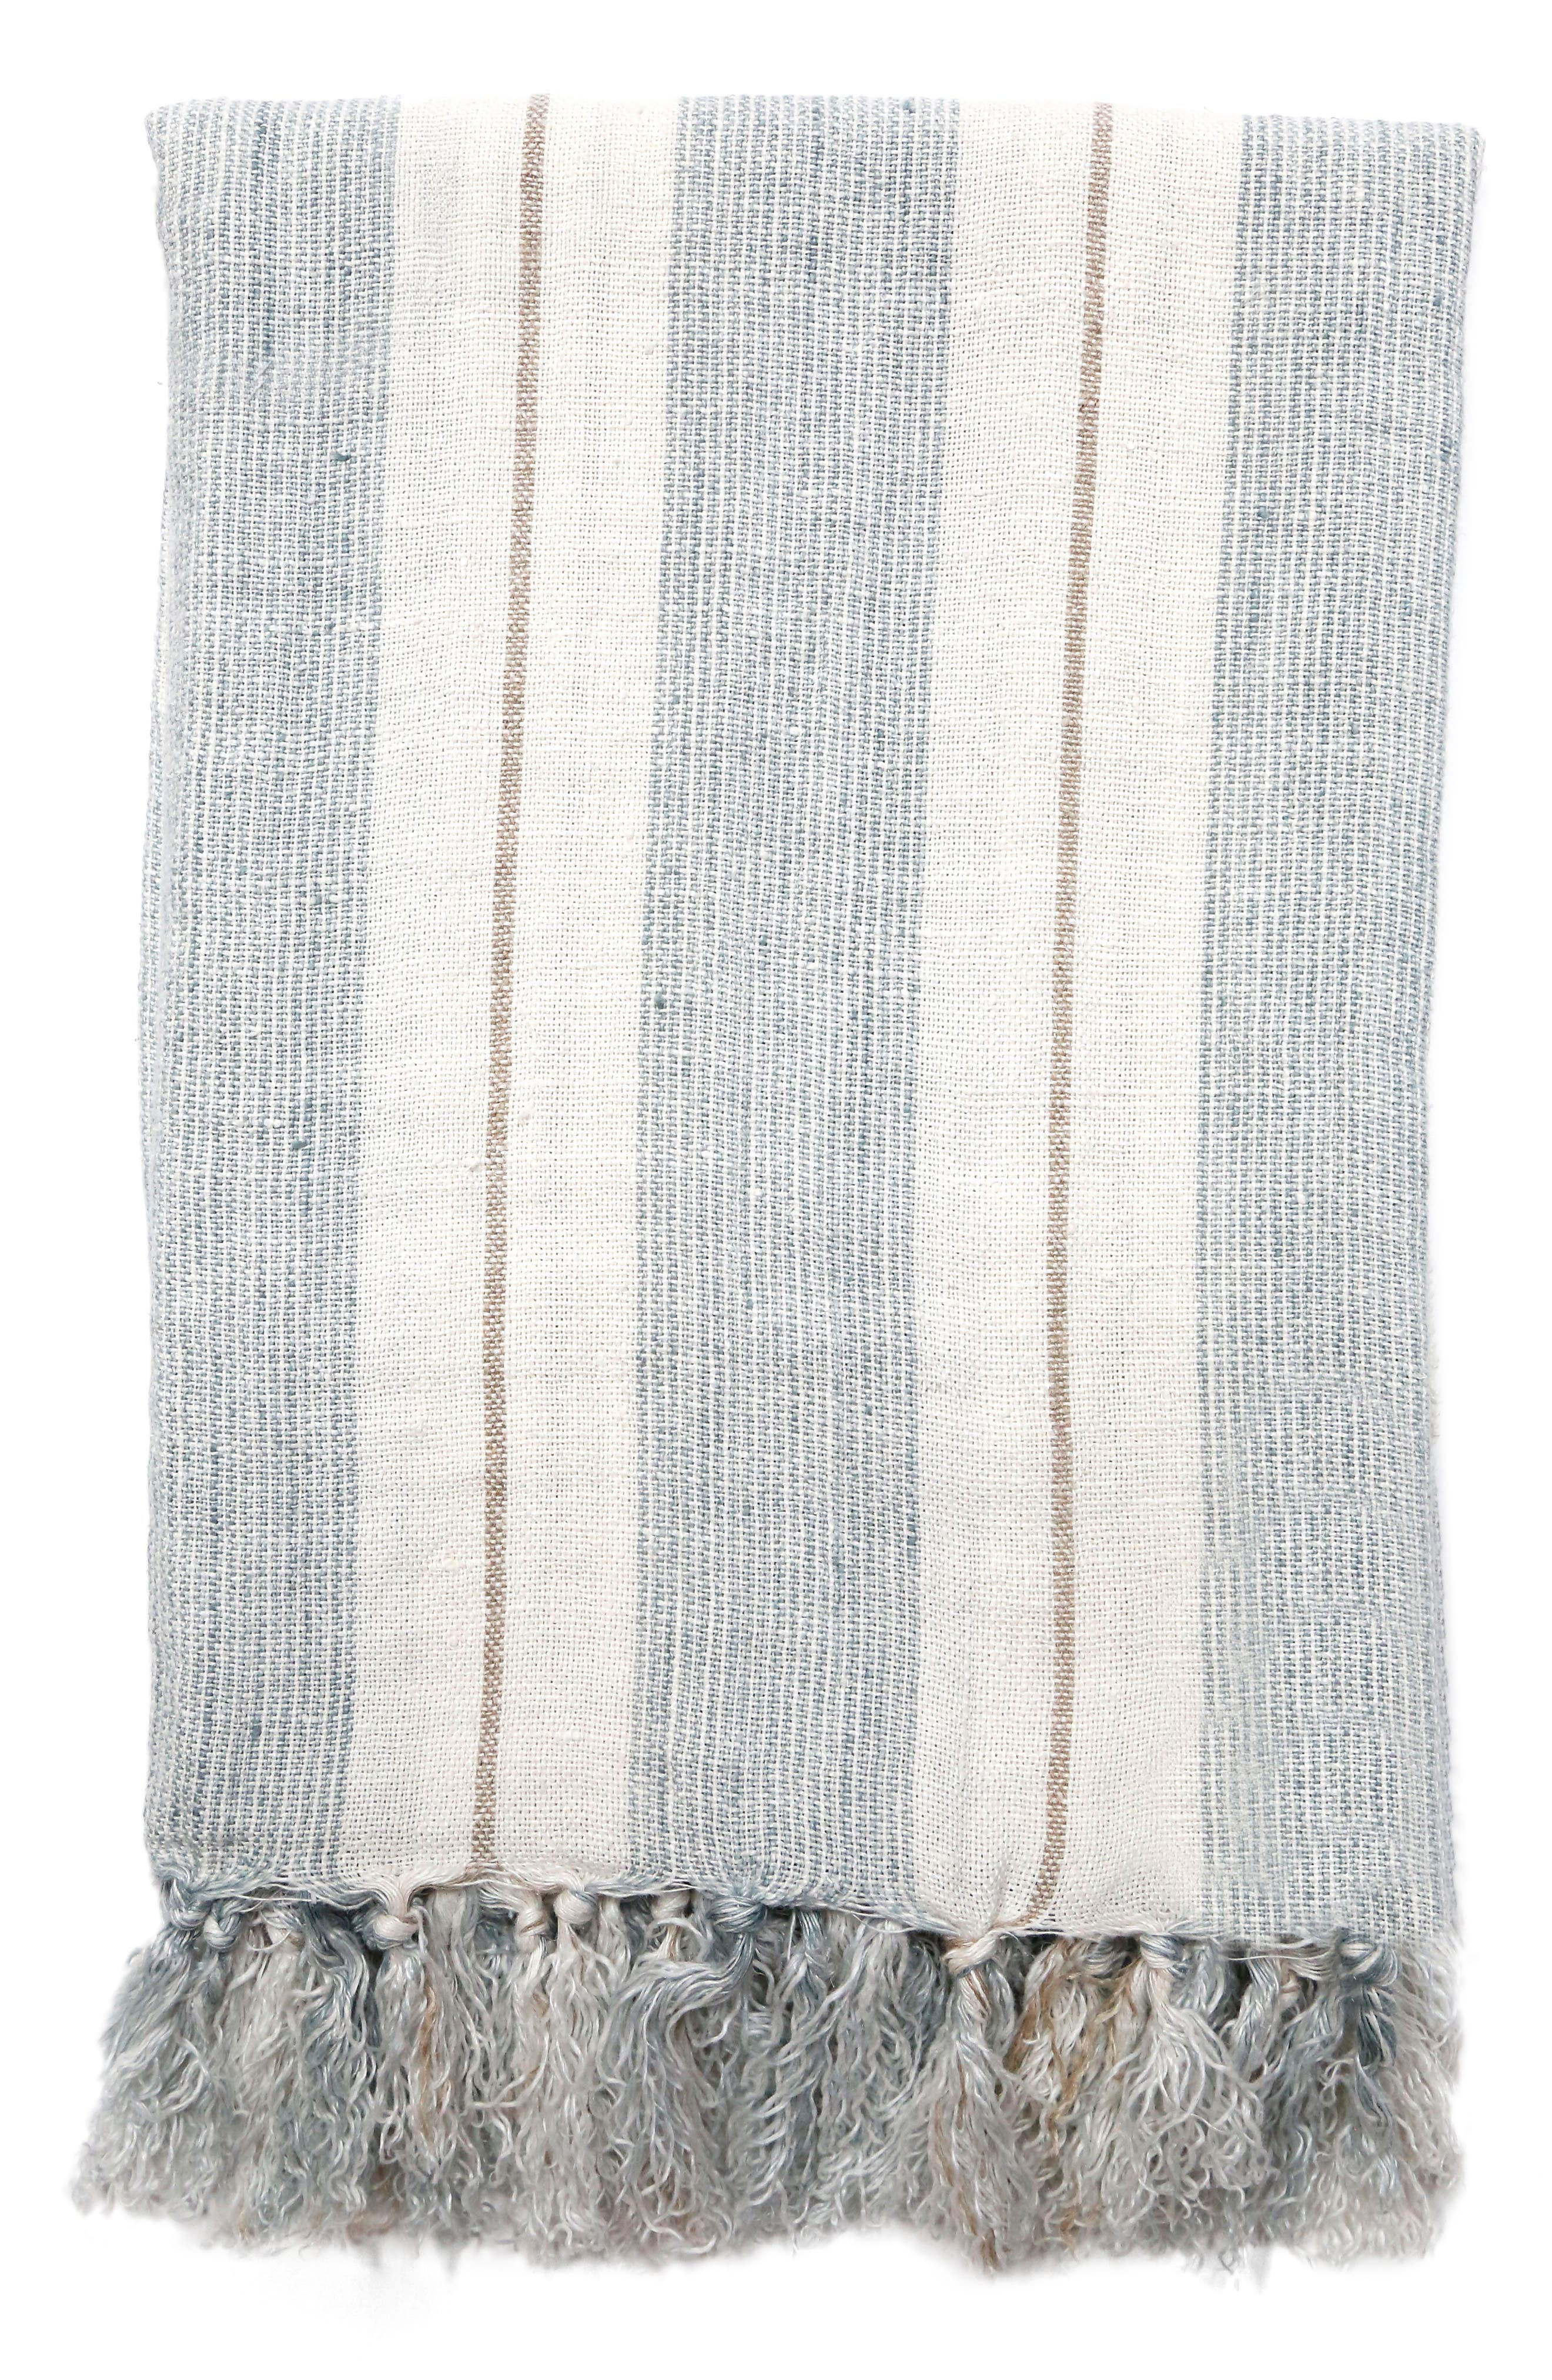 A beautifully striped throw blanket is hand loomed from soft, heavy linen and finished with thick, lush tassels. Style Name: Pom Pom At Home Laguna Throw Blanket. Style Number: 5437478. Available in stores.